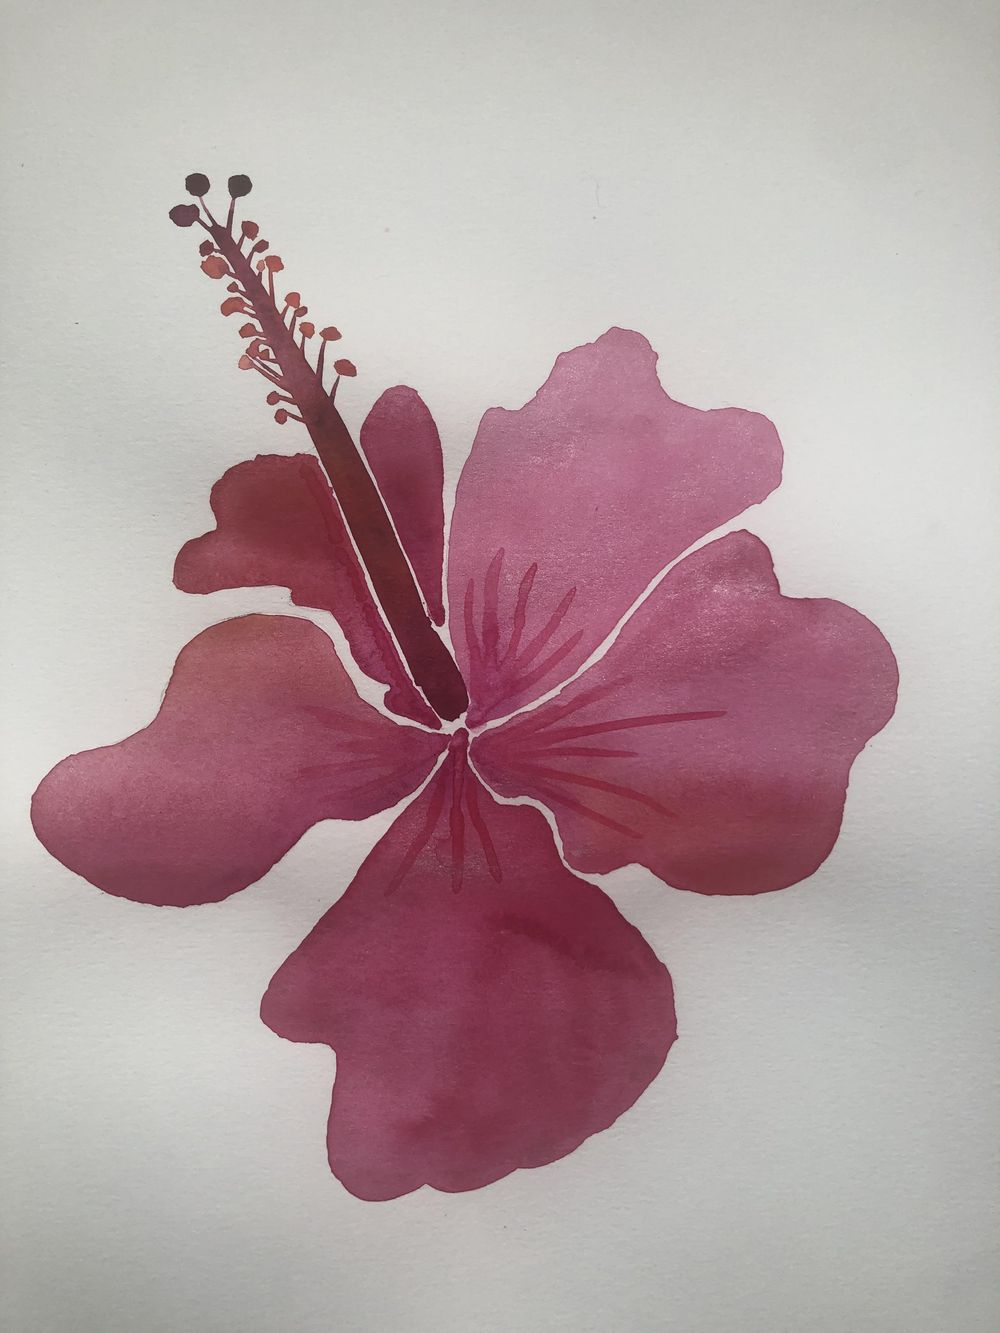 Modern Botanical Watercolors - What a Blast! - image 6 - student project